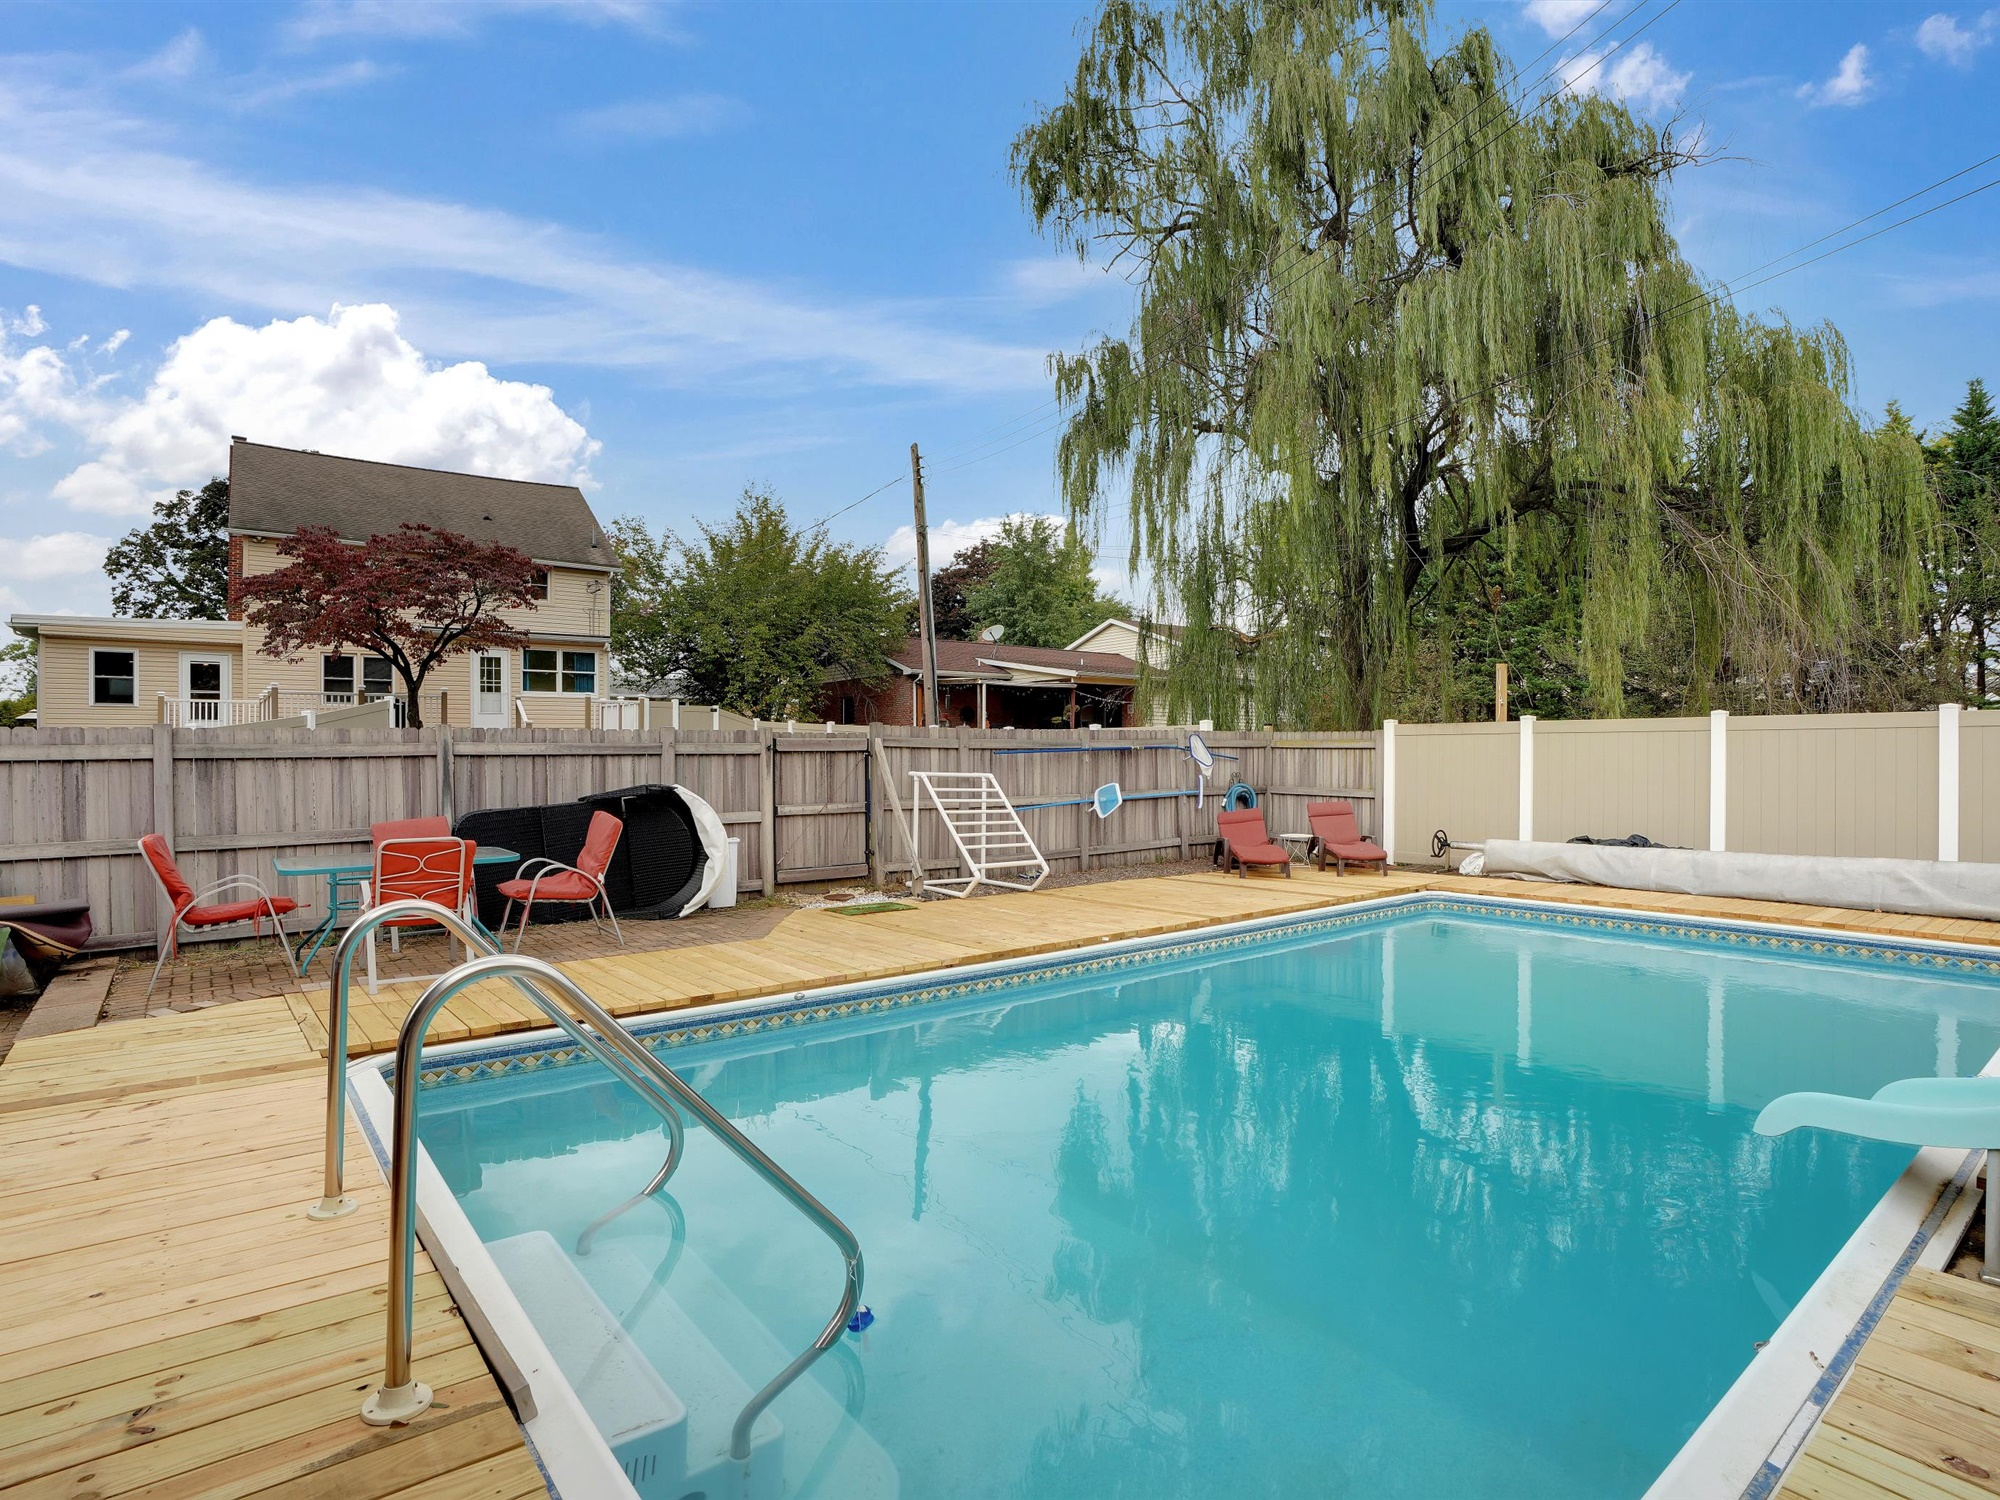 2022 Kline St - Charming single family home with pool